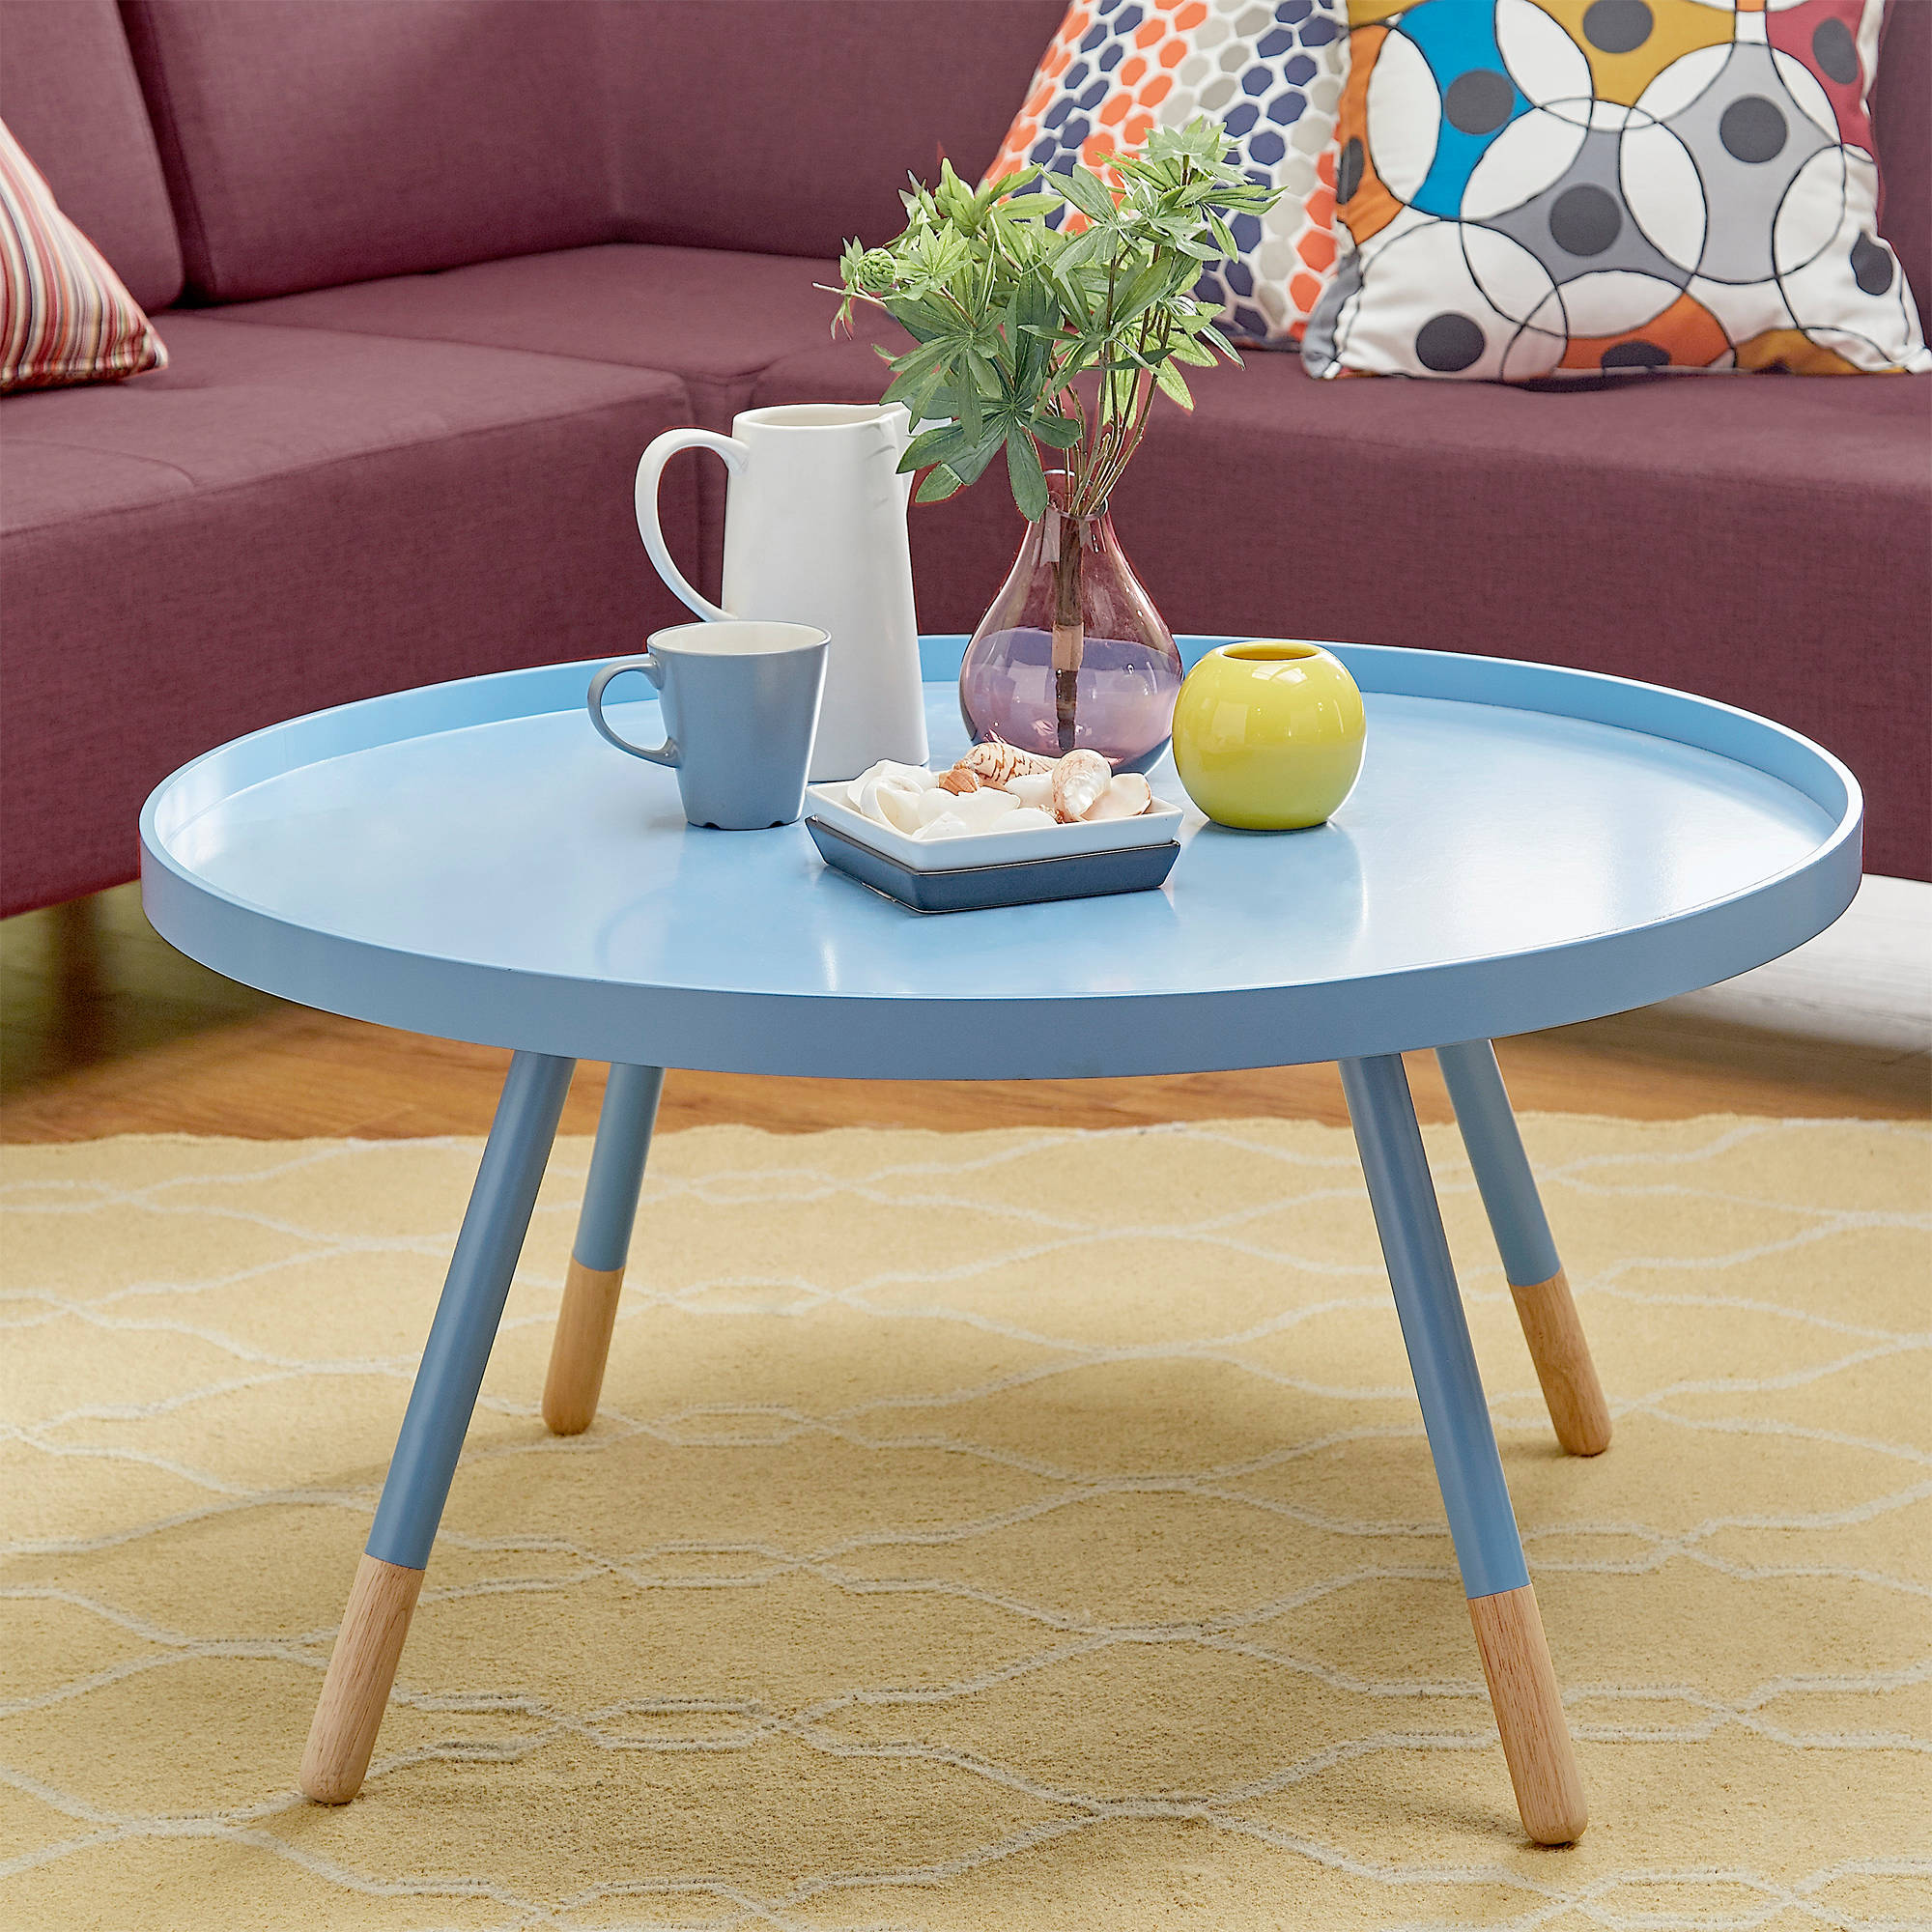 chelsea lane round tray coffee table multiple colors spindle wood accent target furniture mats plastic christmas tablecloths chairside seater dining square glass mid century